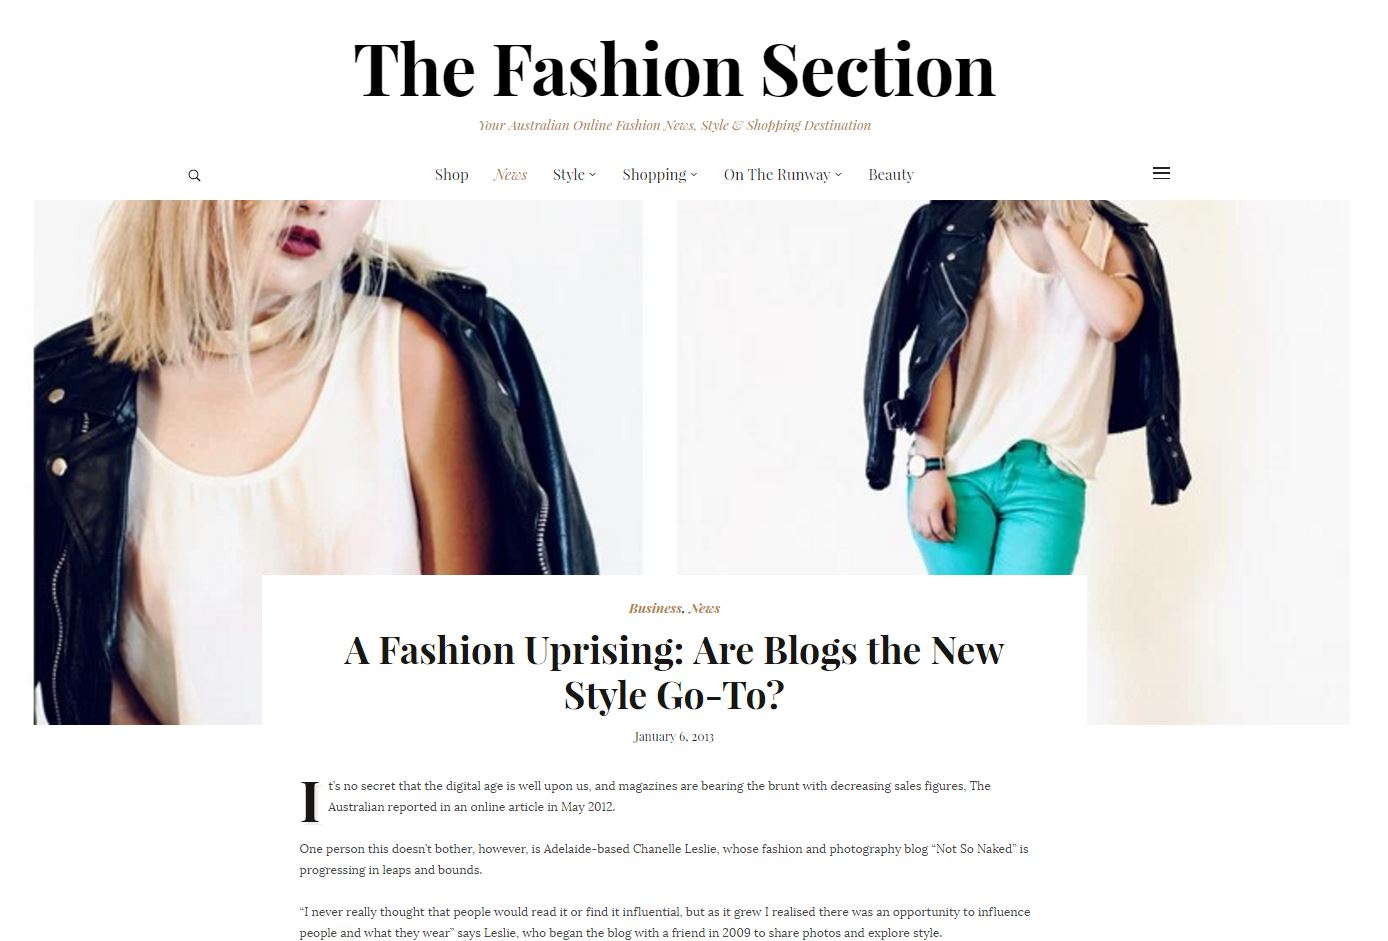 Feature on Chanelle's work in The Fashion Section, 2013